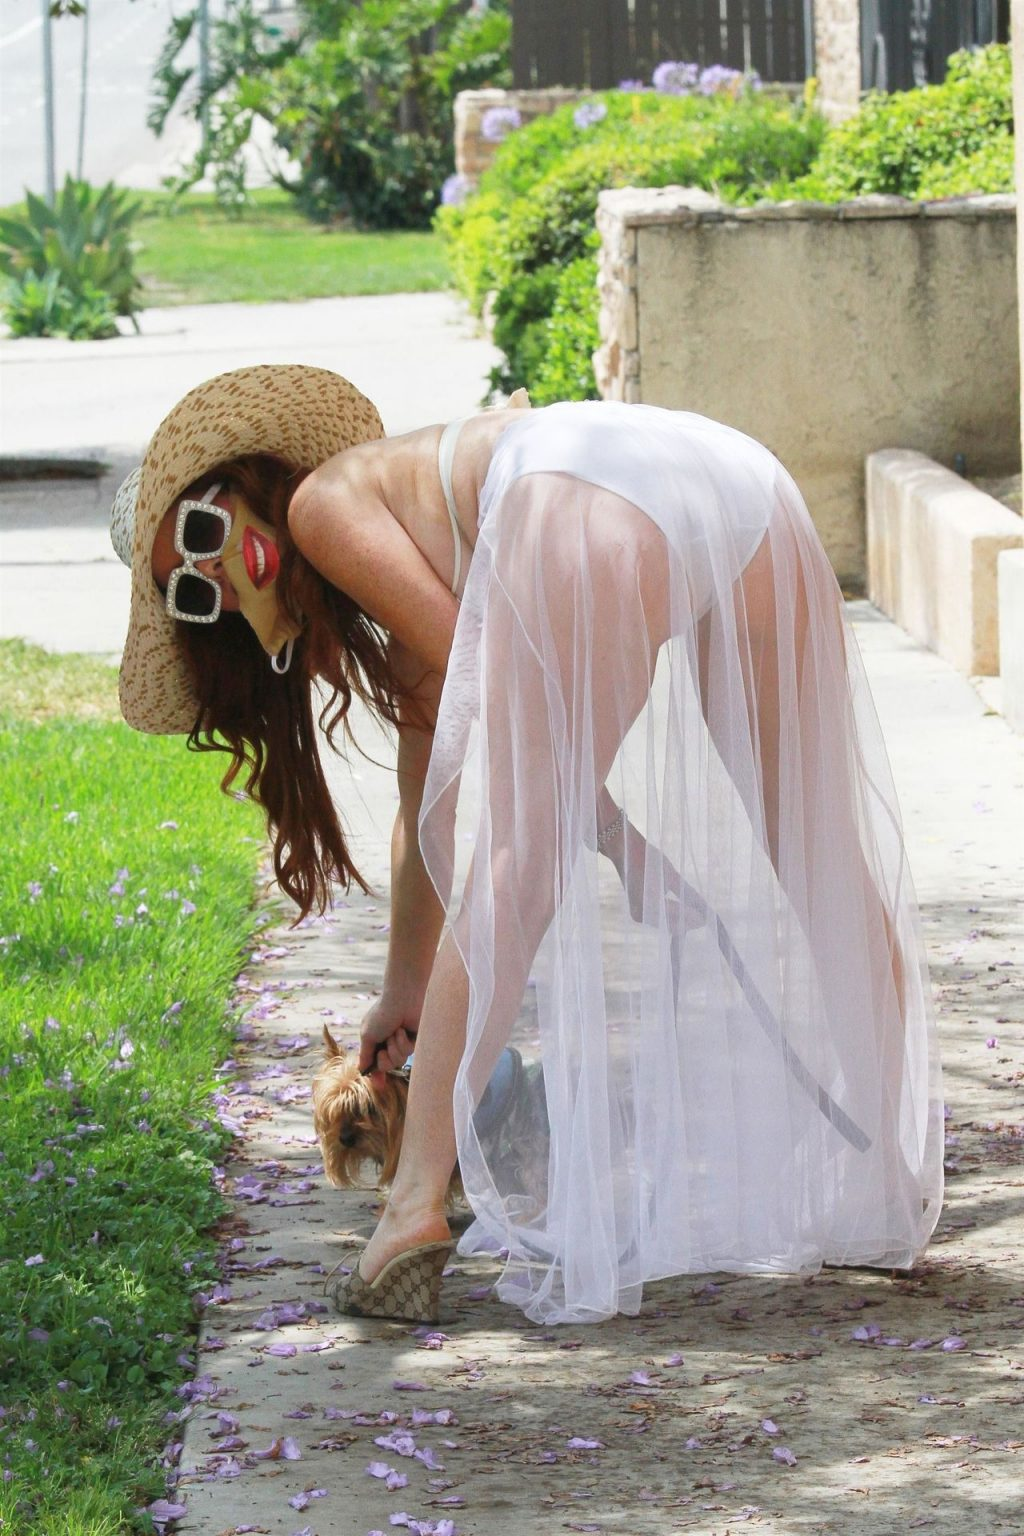 Hot Phoebe Price Poses in a White Dress in LA (53 Photos)